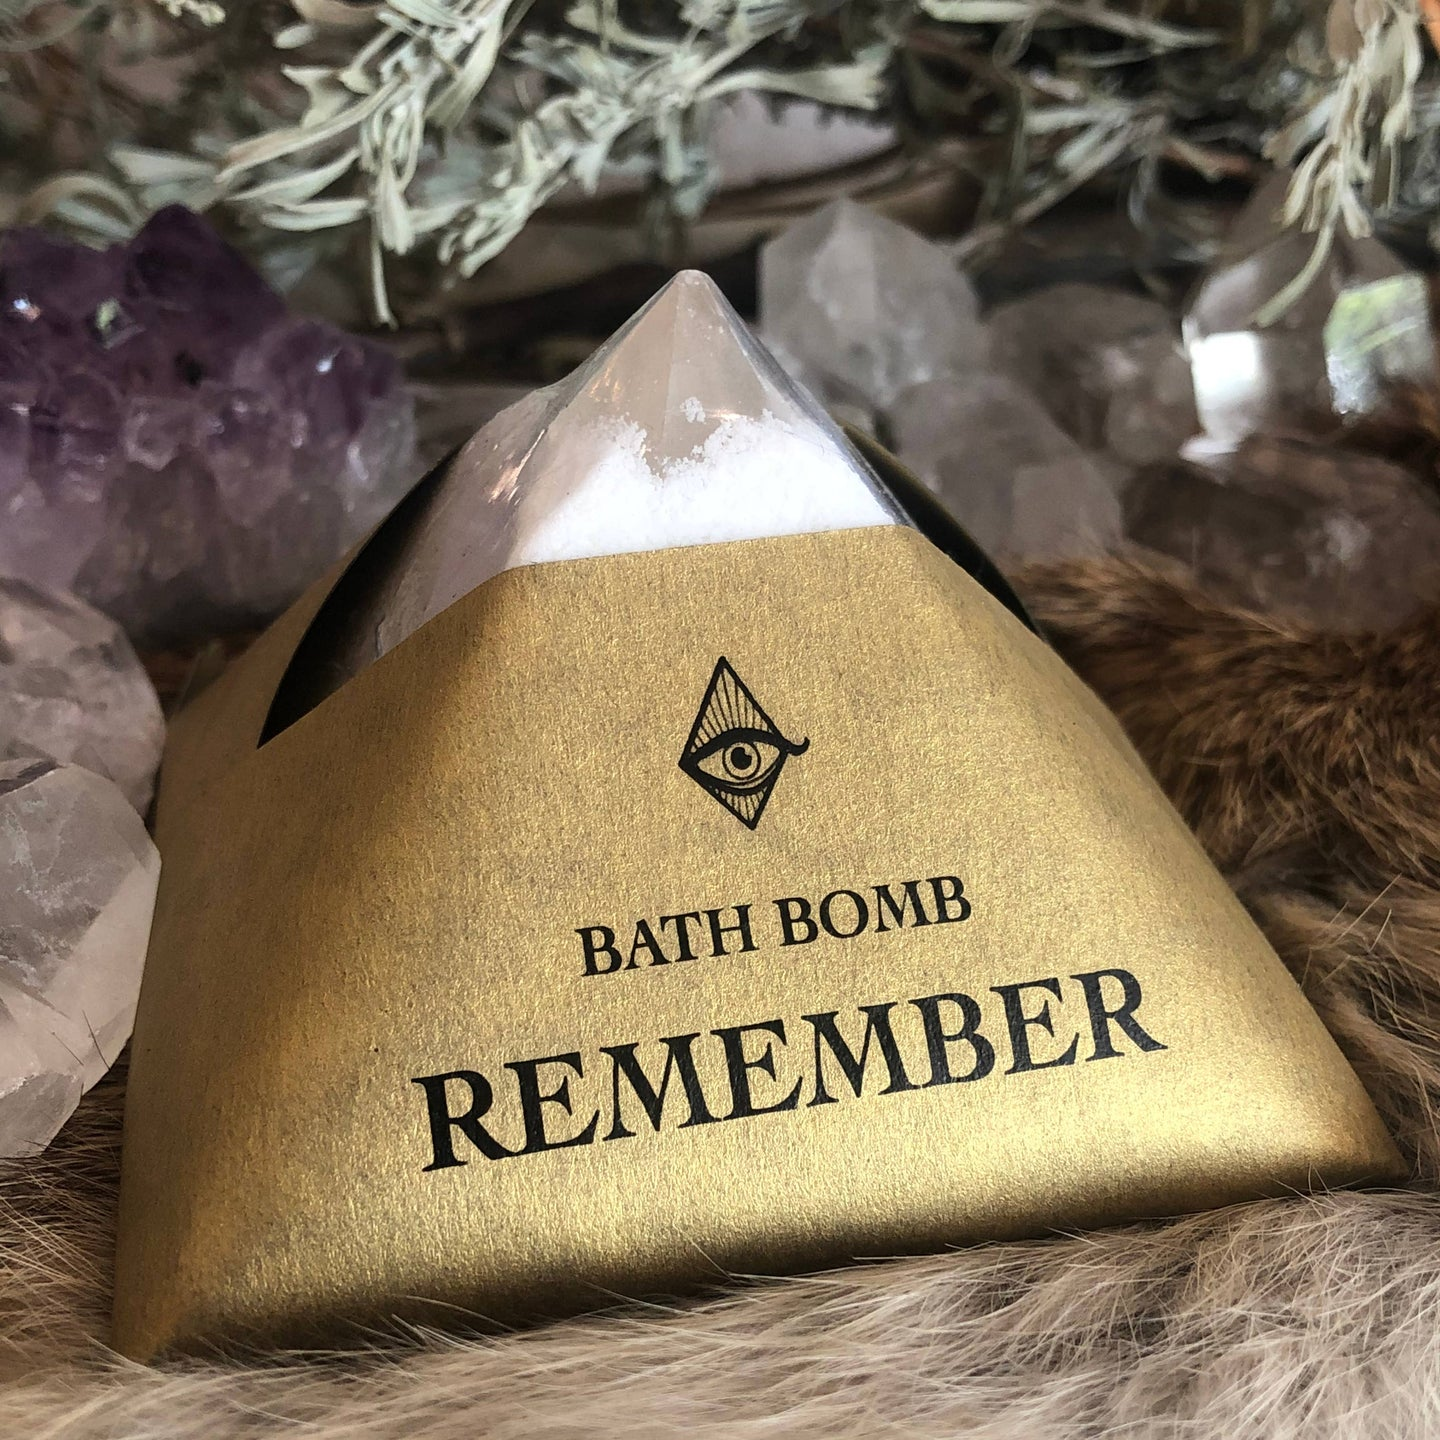 Remember Bath Bomb